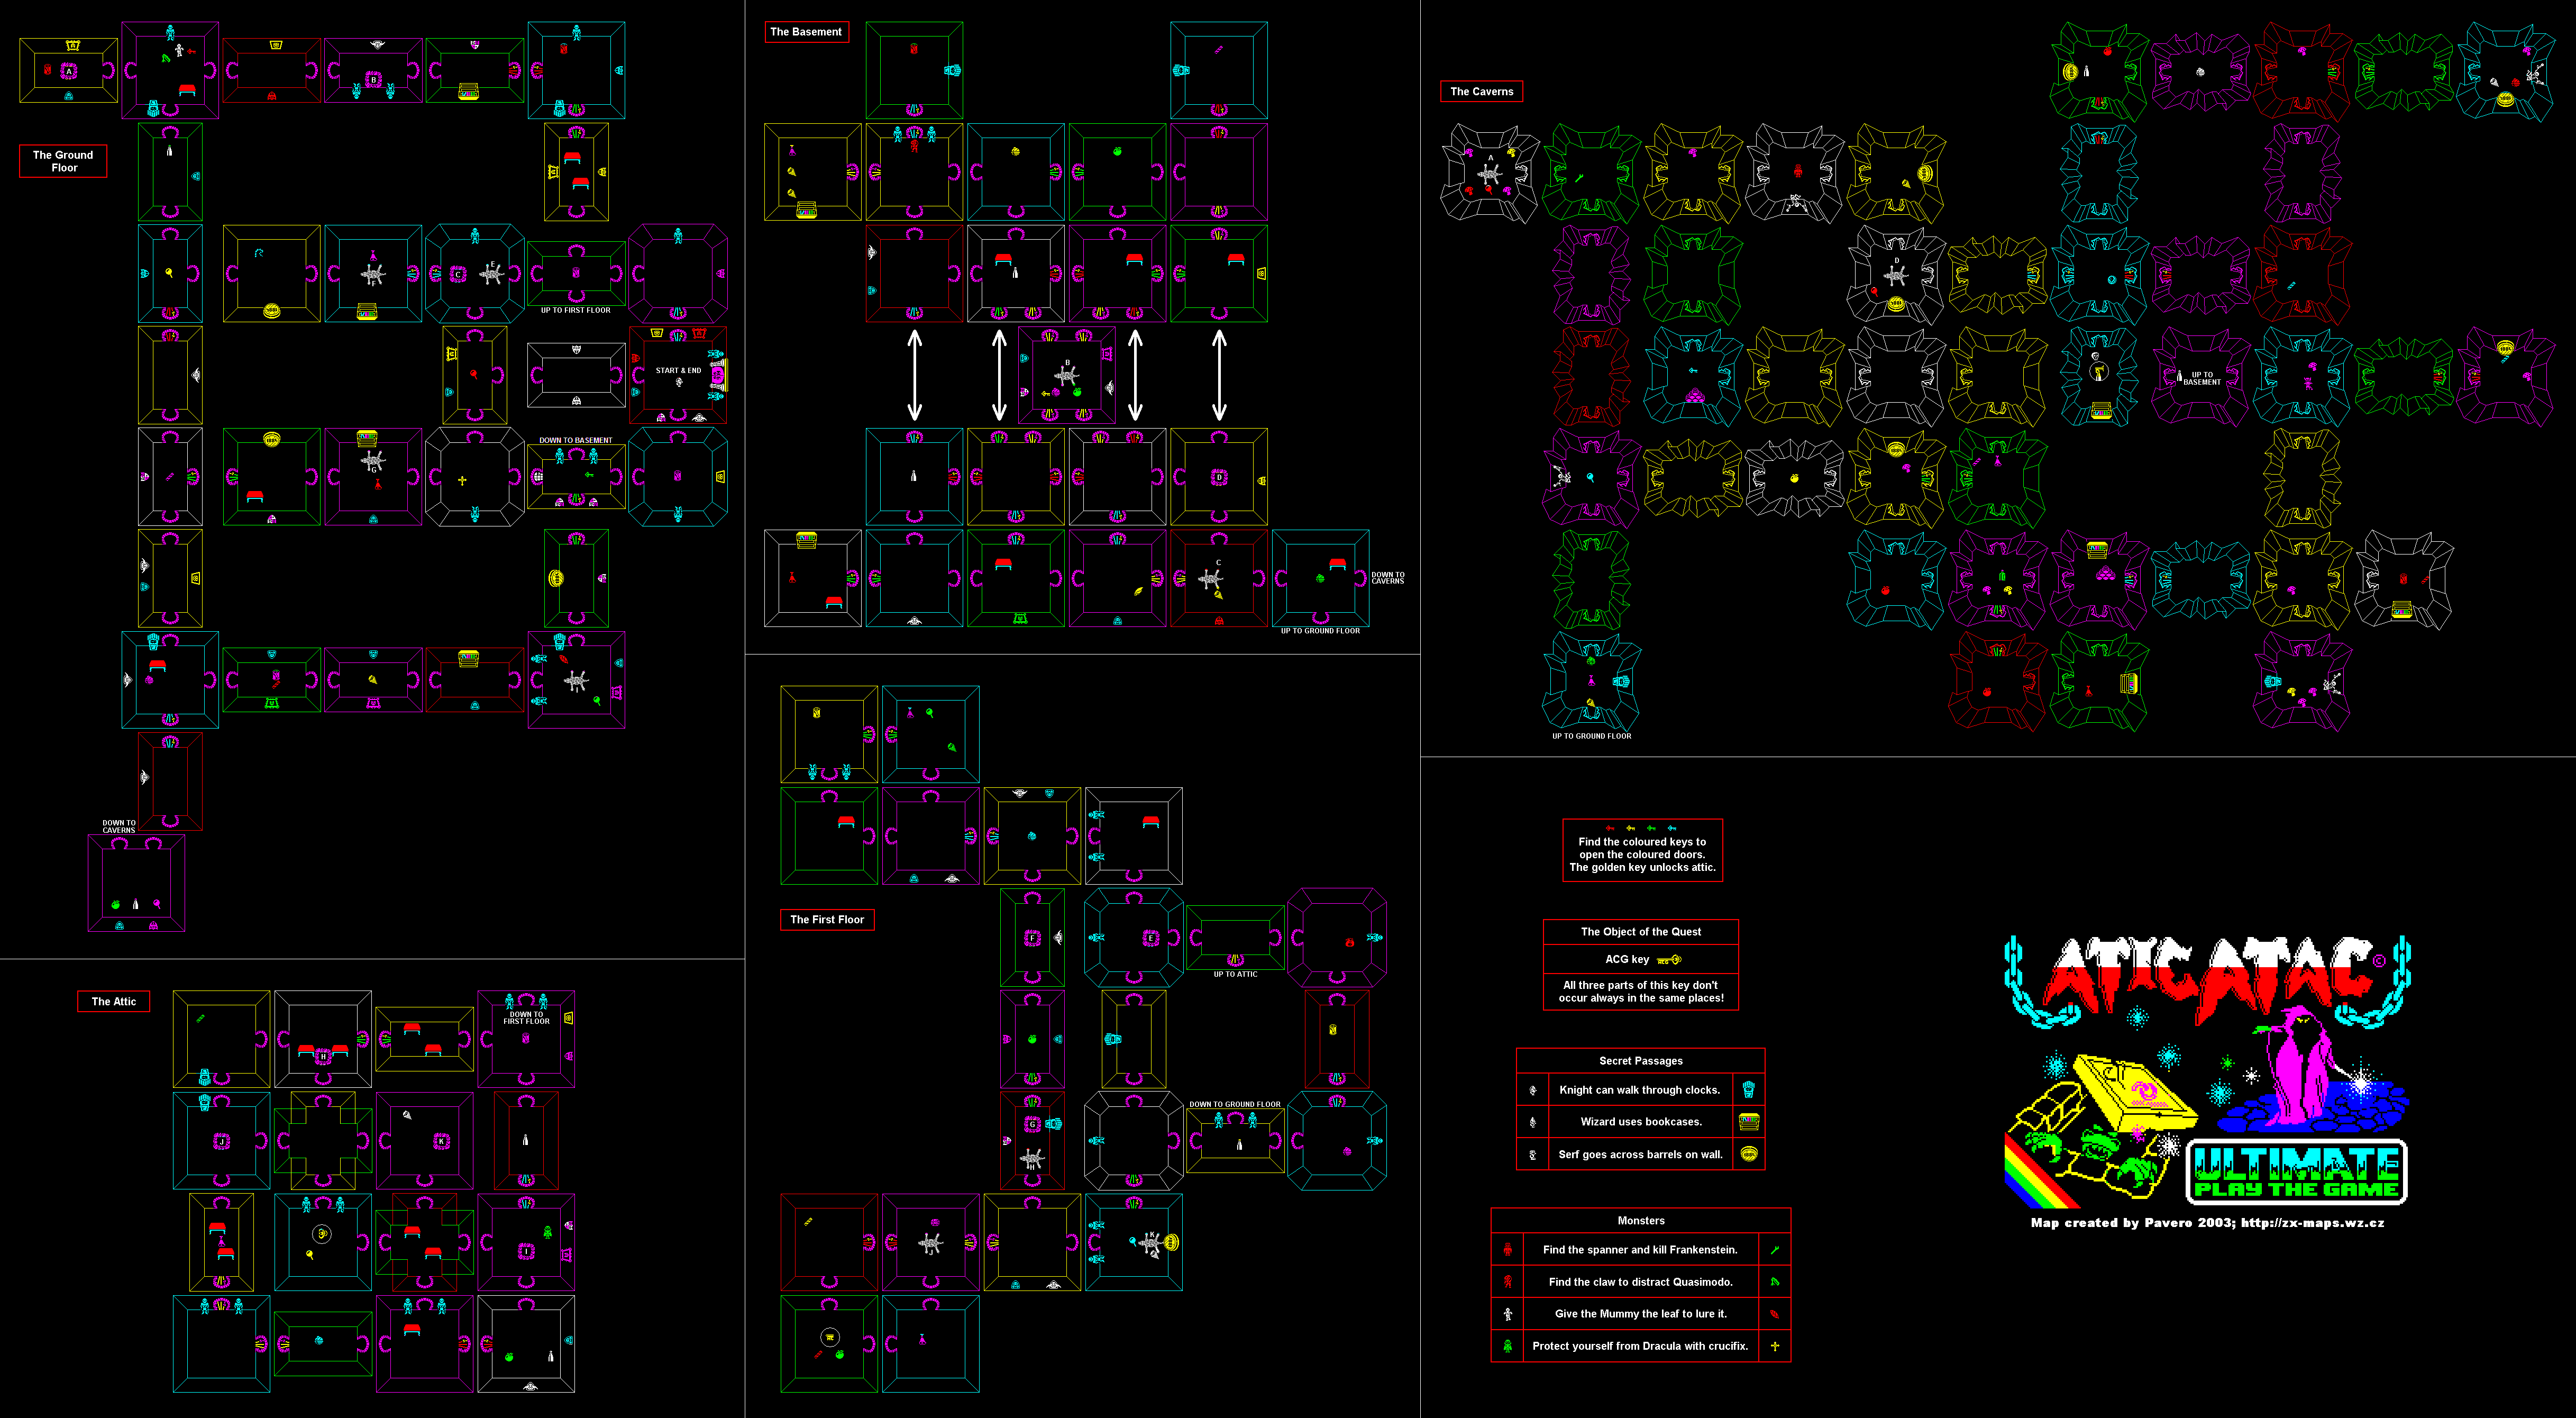 Atic Atac Game Map